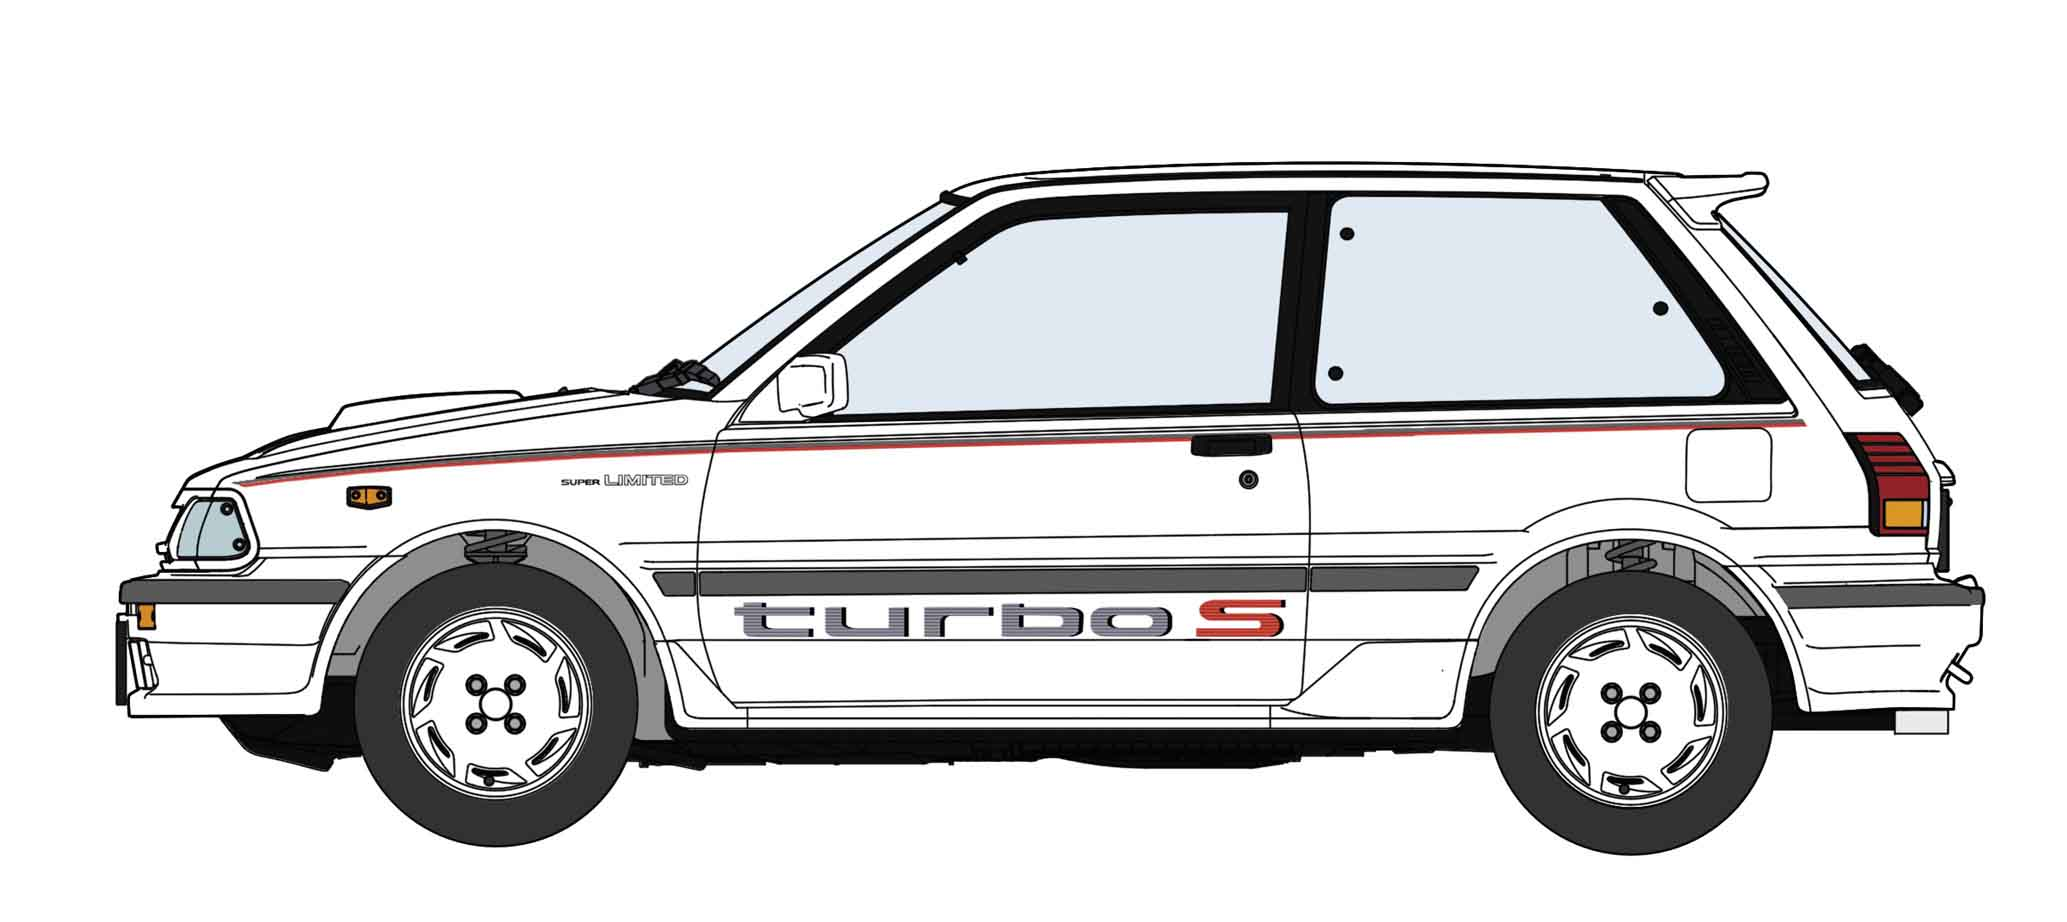 Hasegawa 1/24 Toyota Starlet EP71 Turbo-S (3 Door) Middle Version Super-Limited